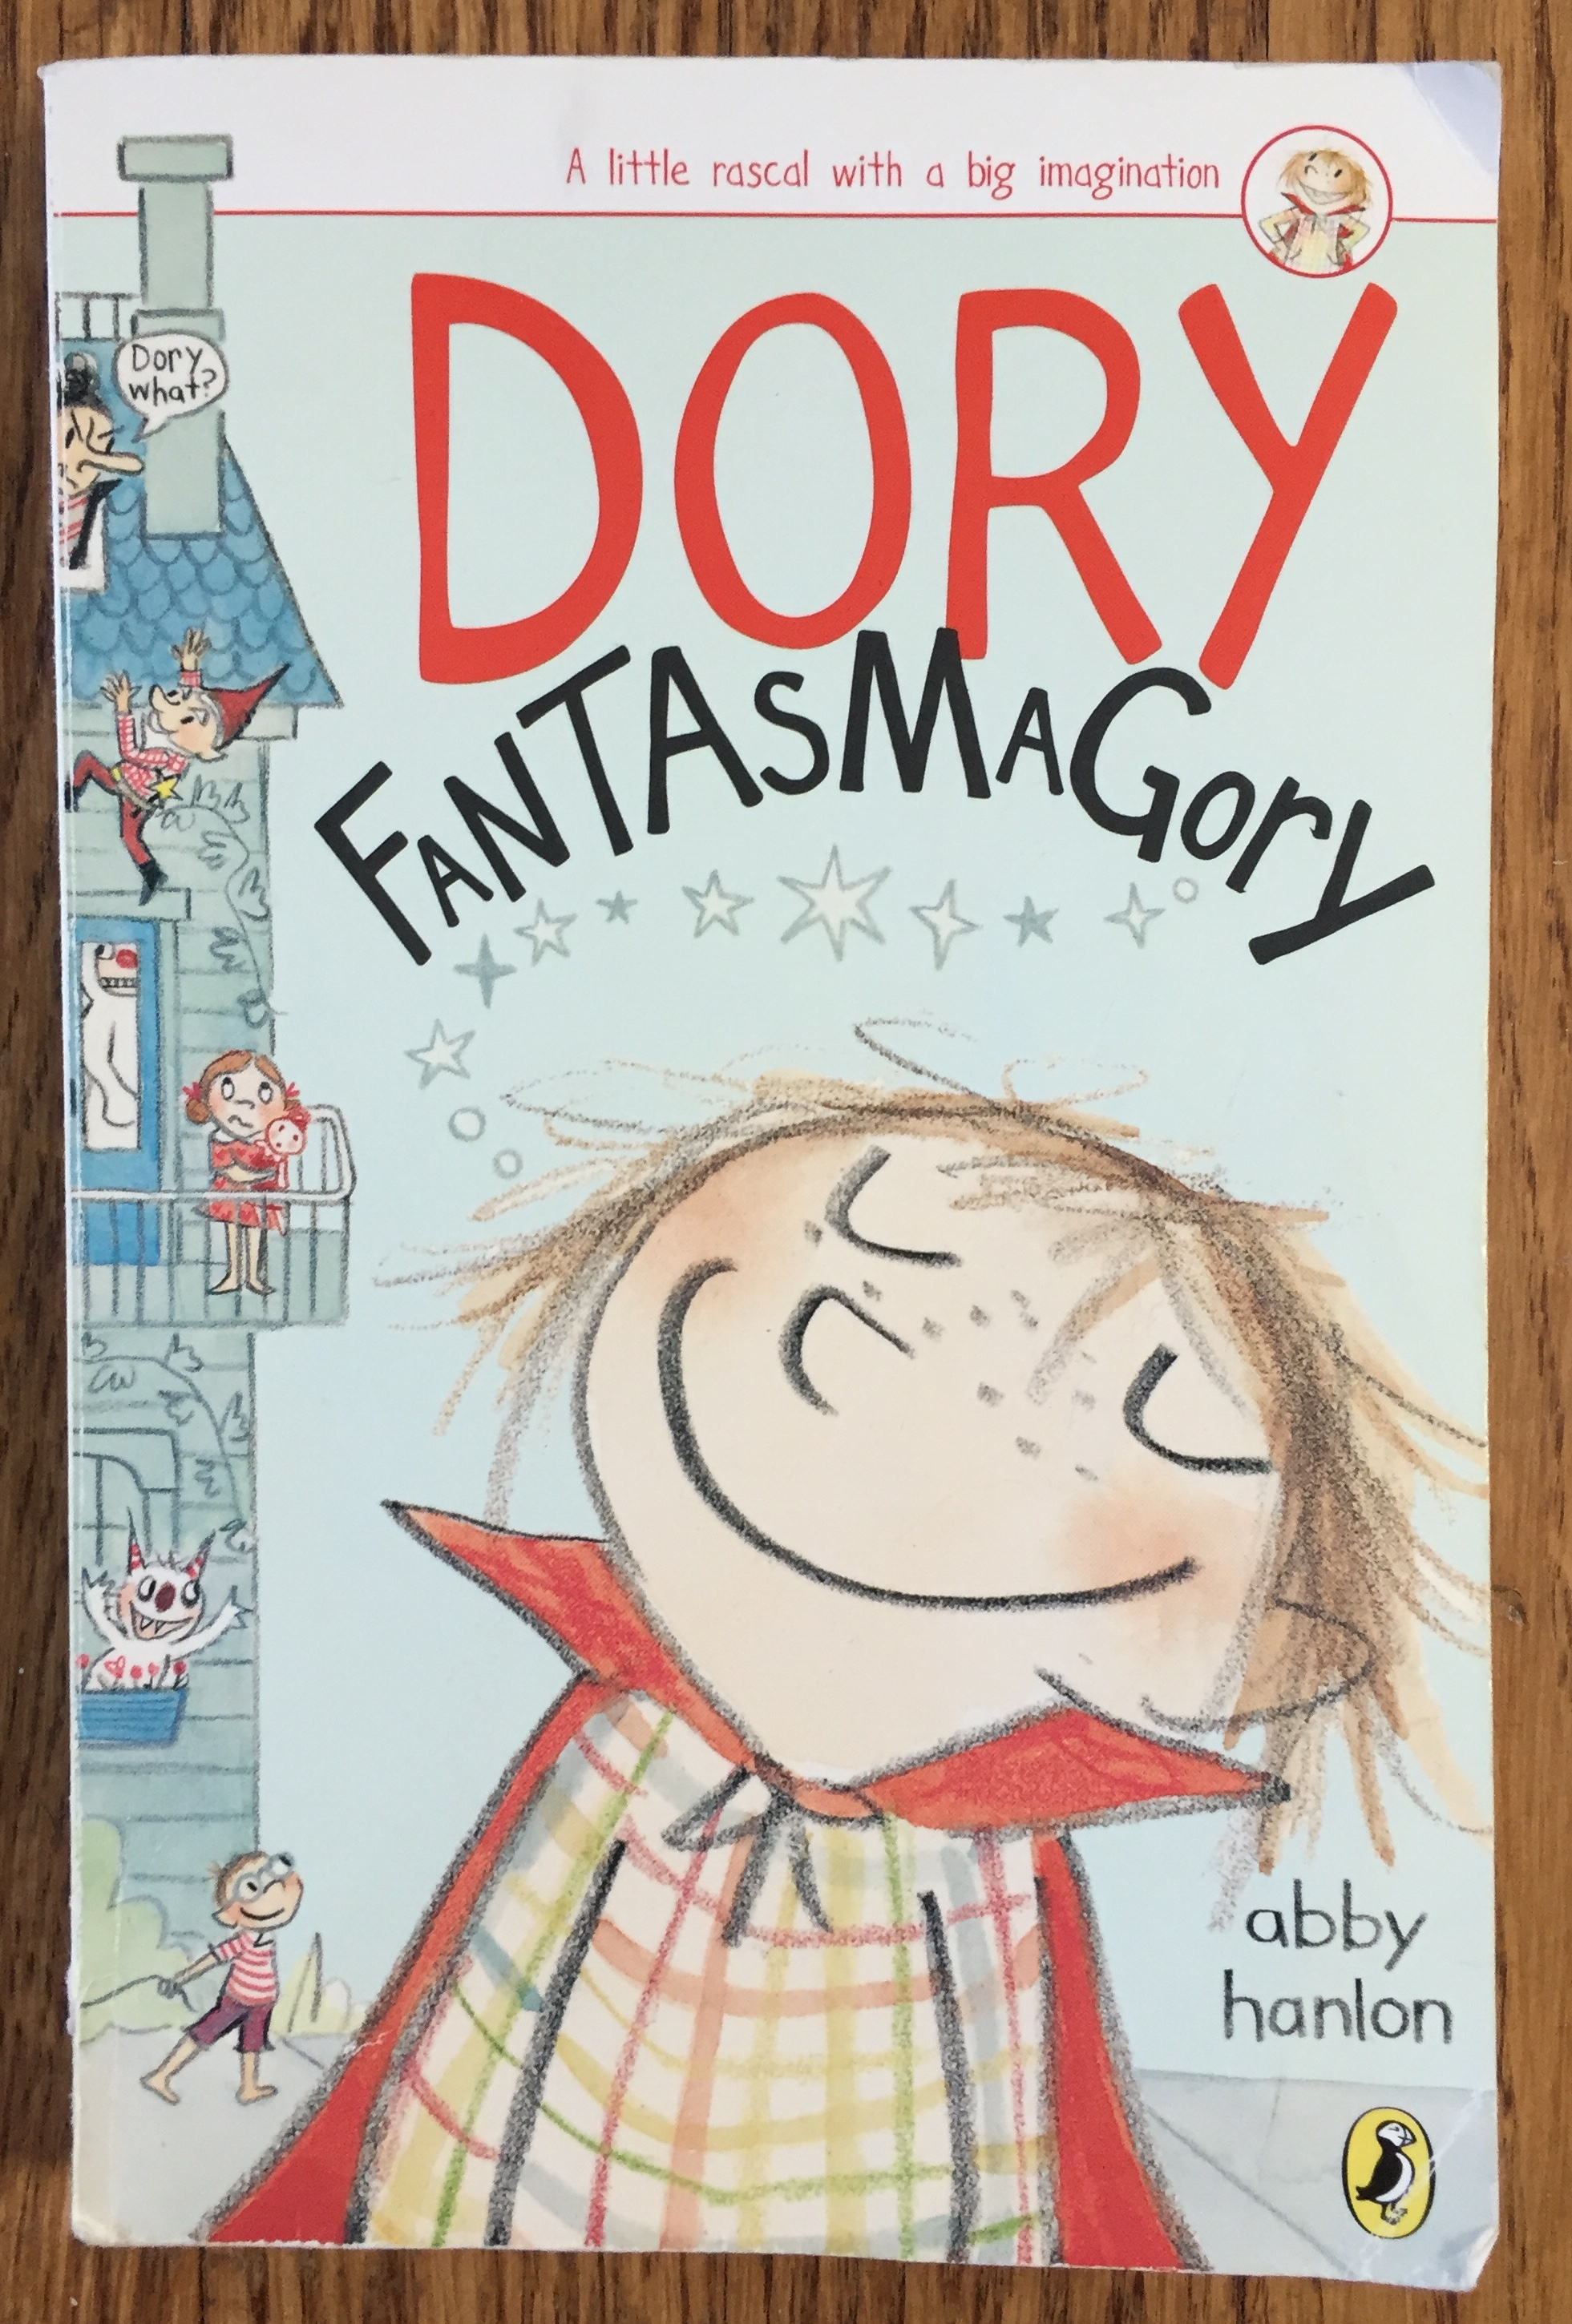 Dory Fantasmagory book one chapter book for kids by Abby Hanlon